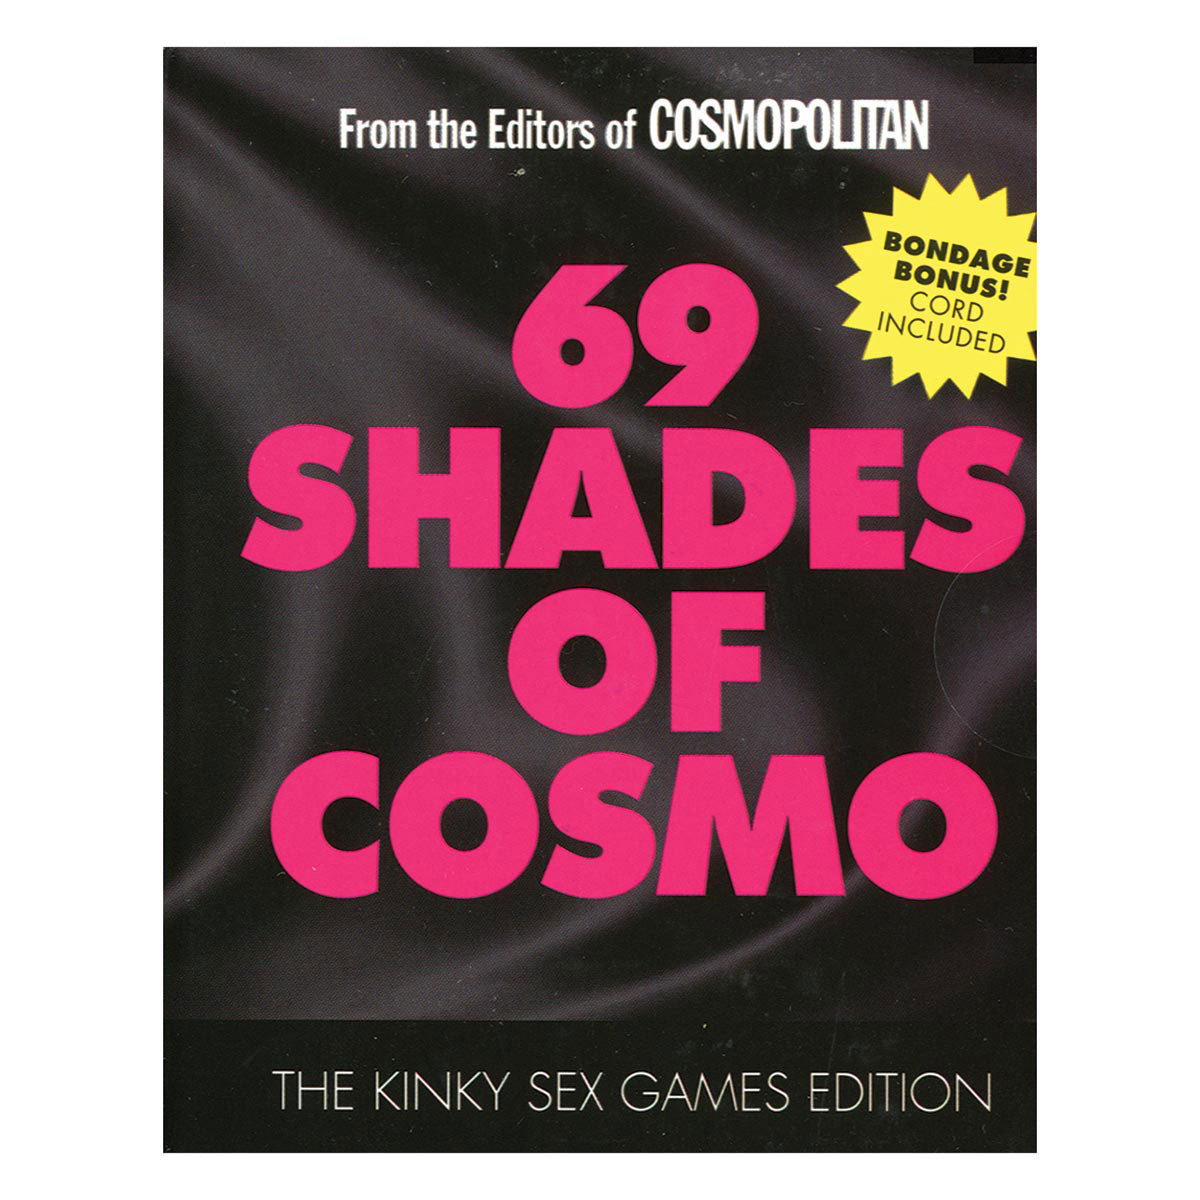 Hearst Books 69 Shades of Cosmo: The Kinky Sex Games Edition